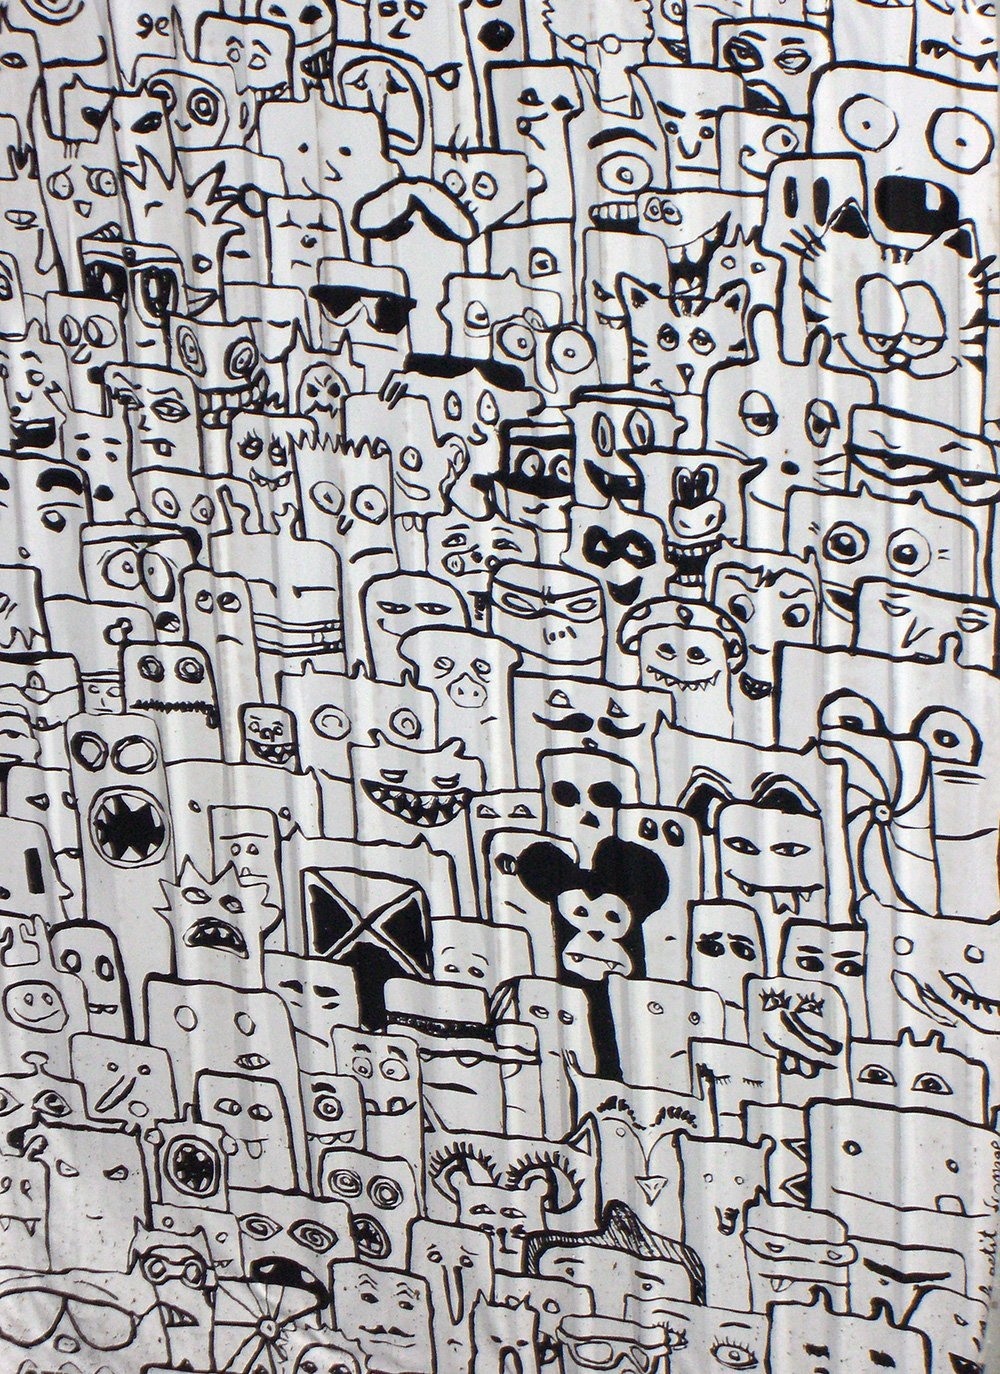 Marker Comic Streetart in Berlin